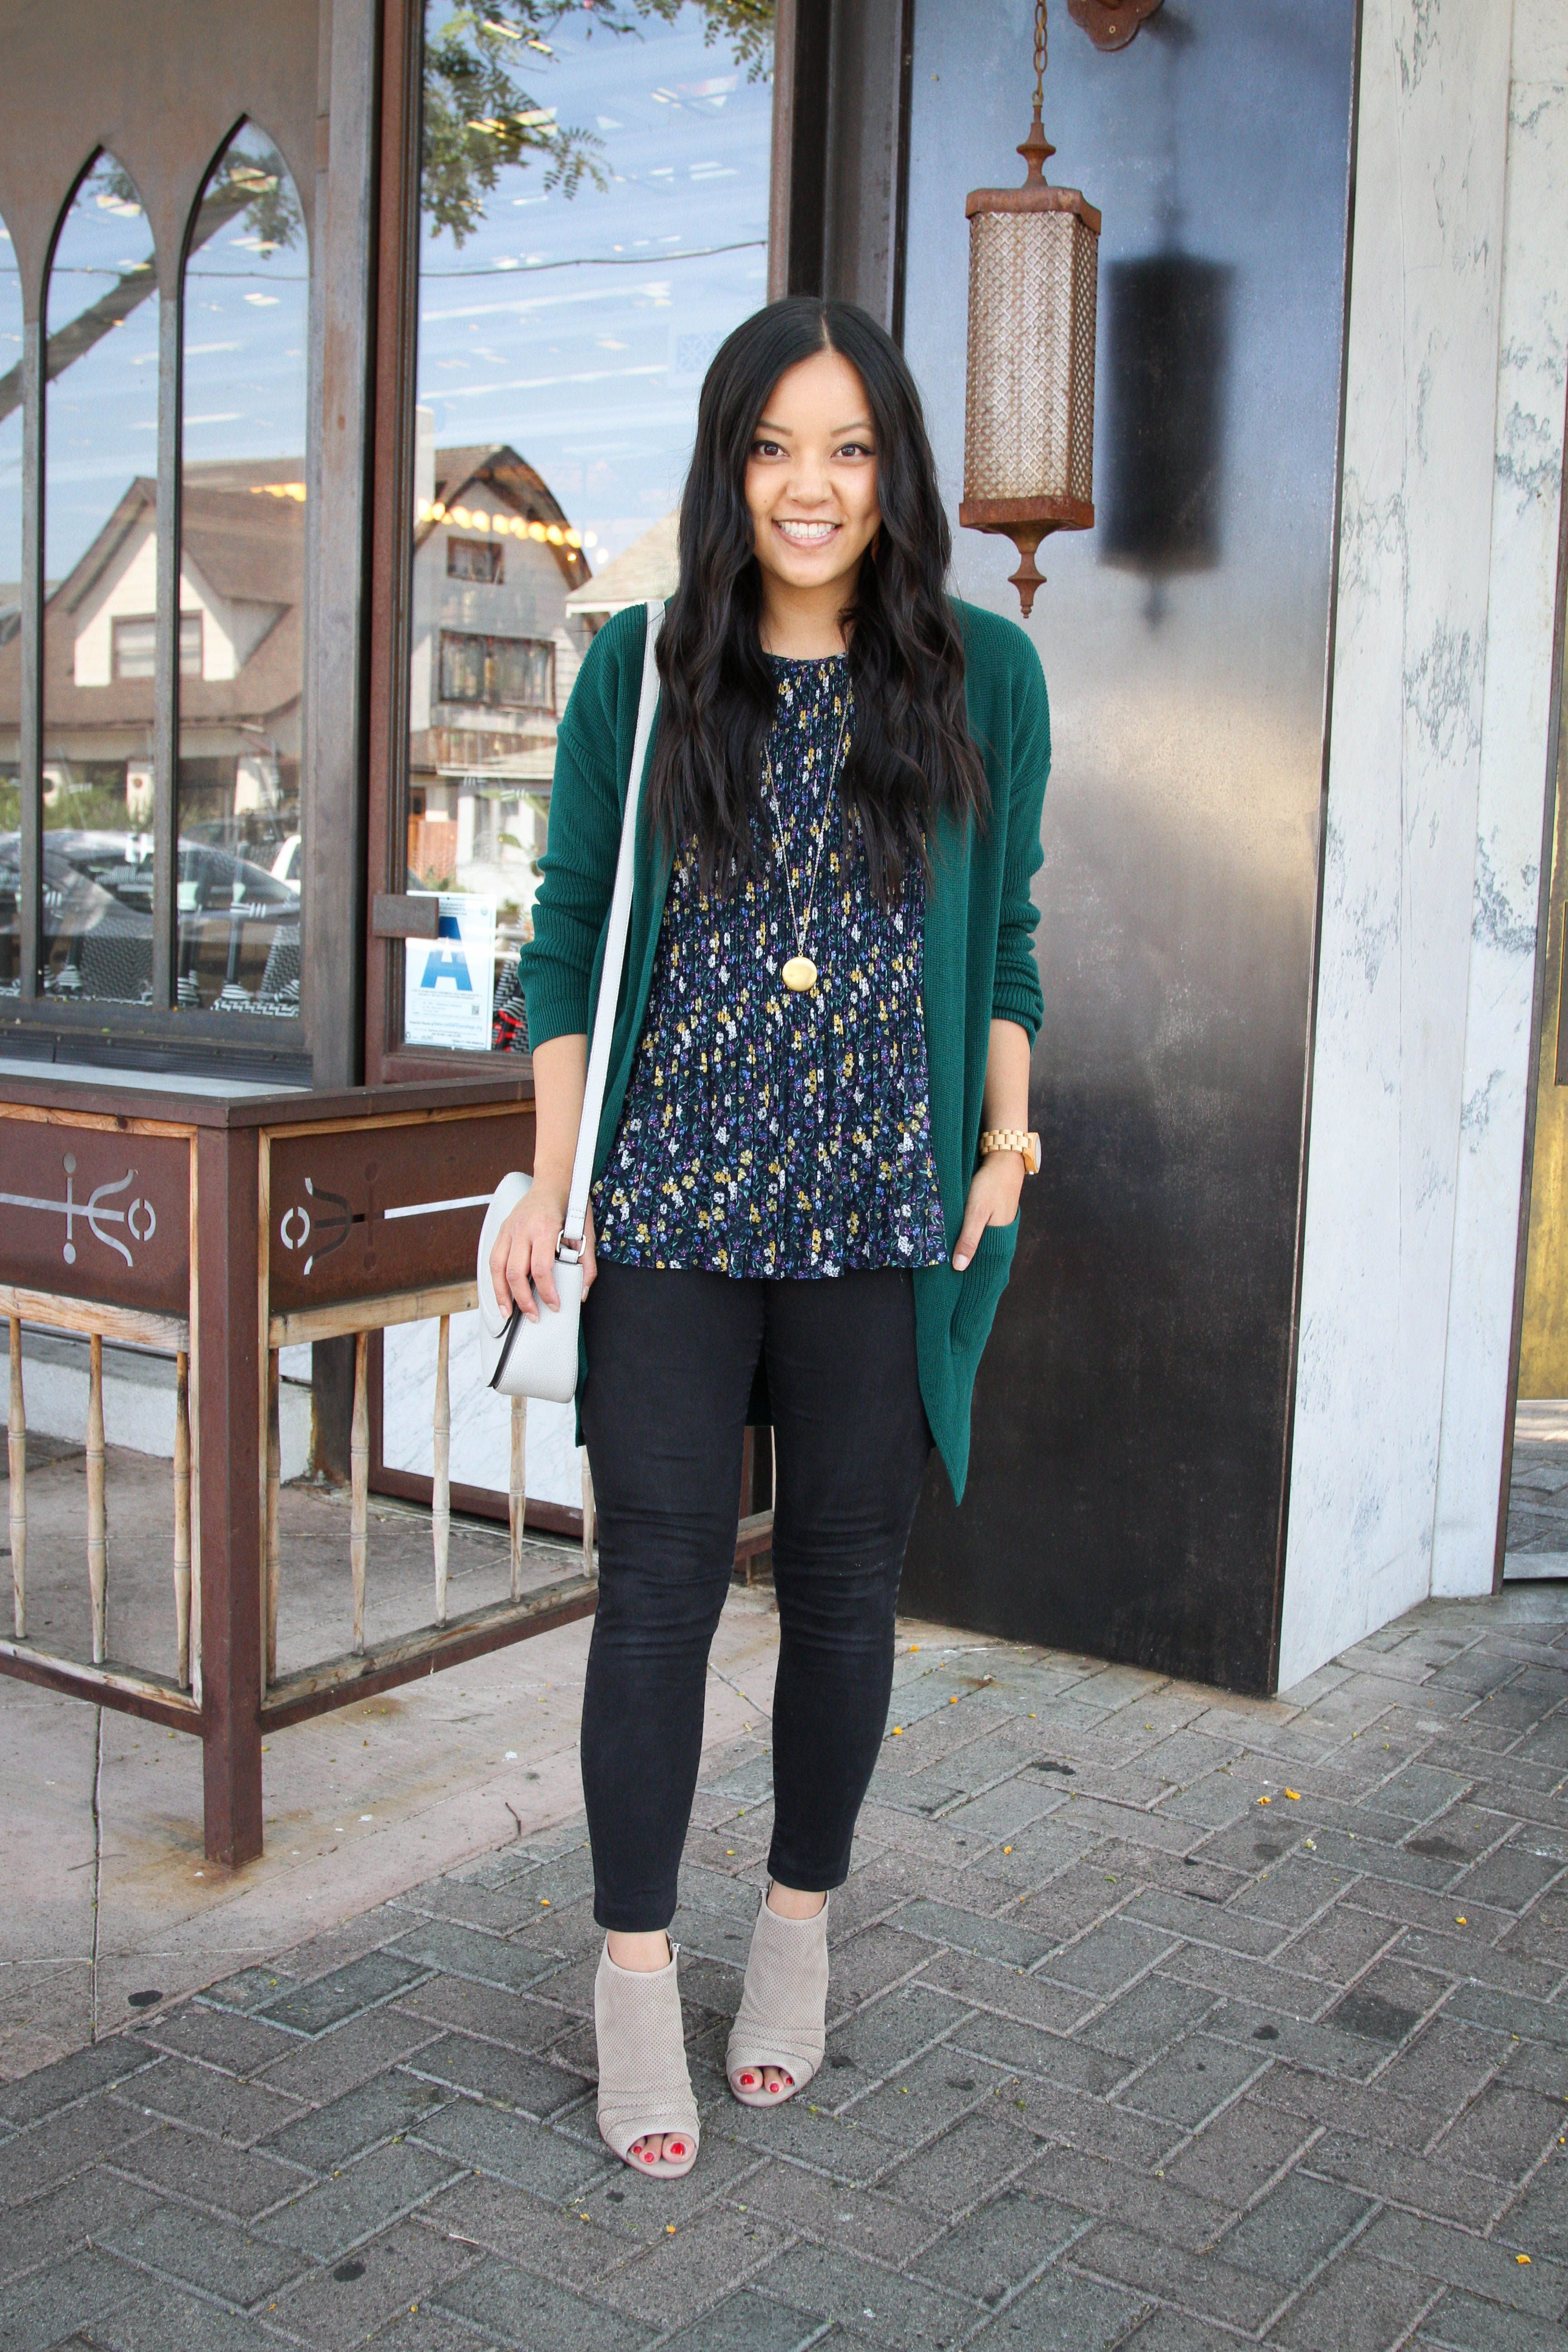 53d1b07d071 Green Cardigan + Floral Top + Black Jeans + Taupe Booties + Gray Bag